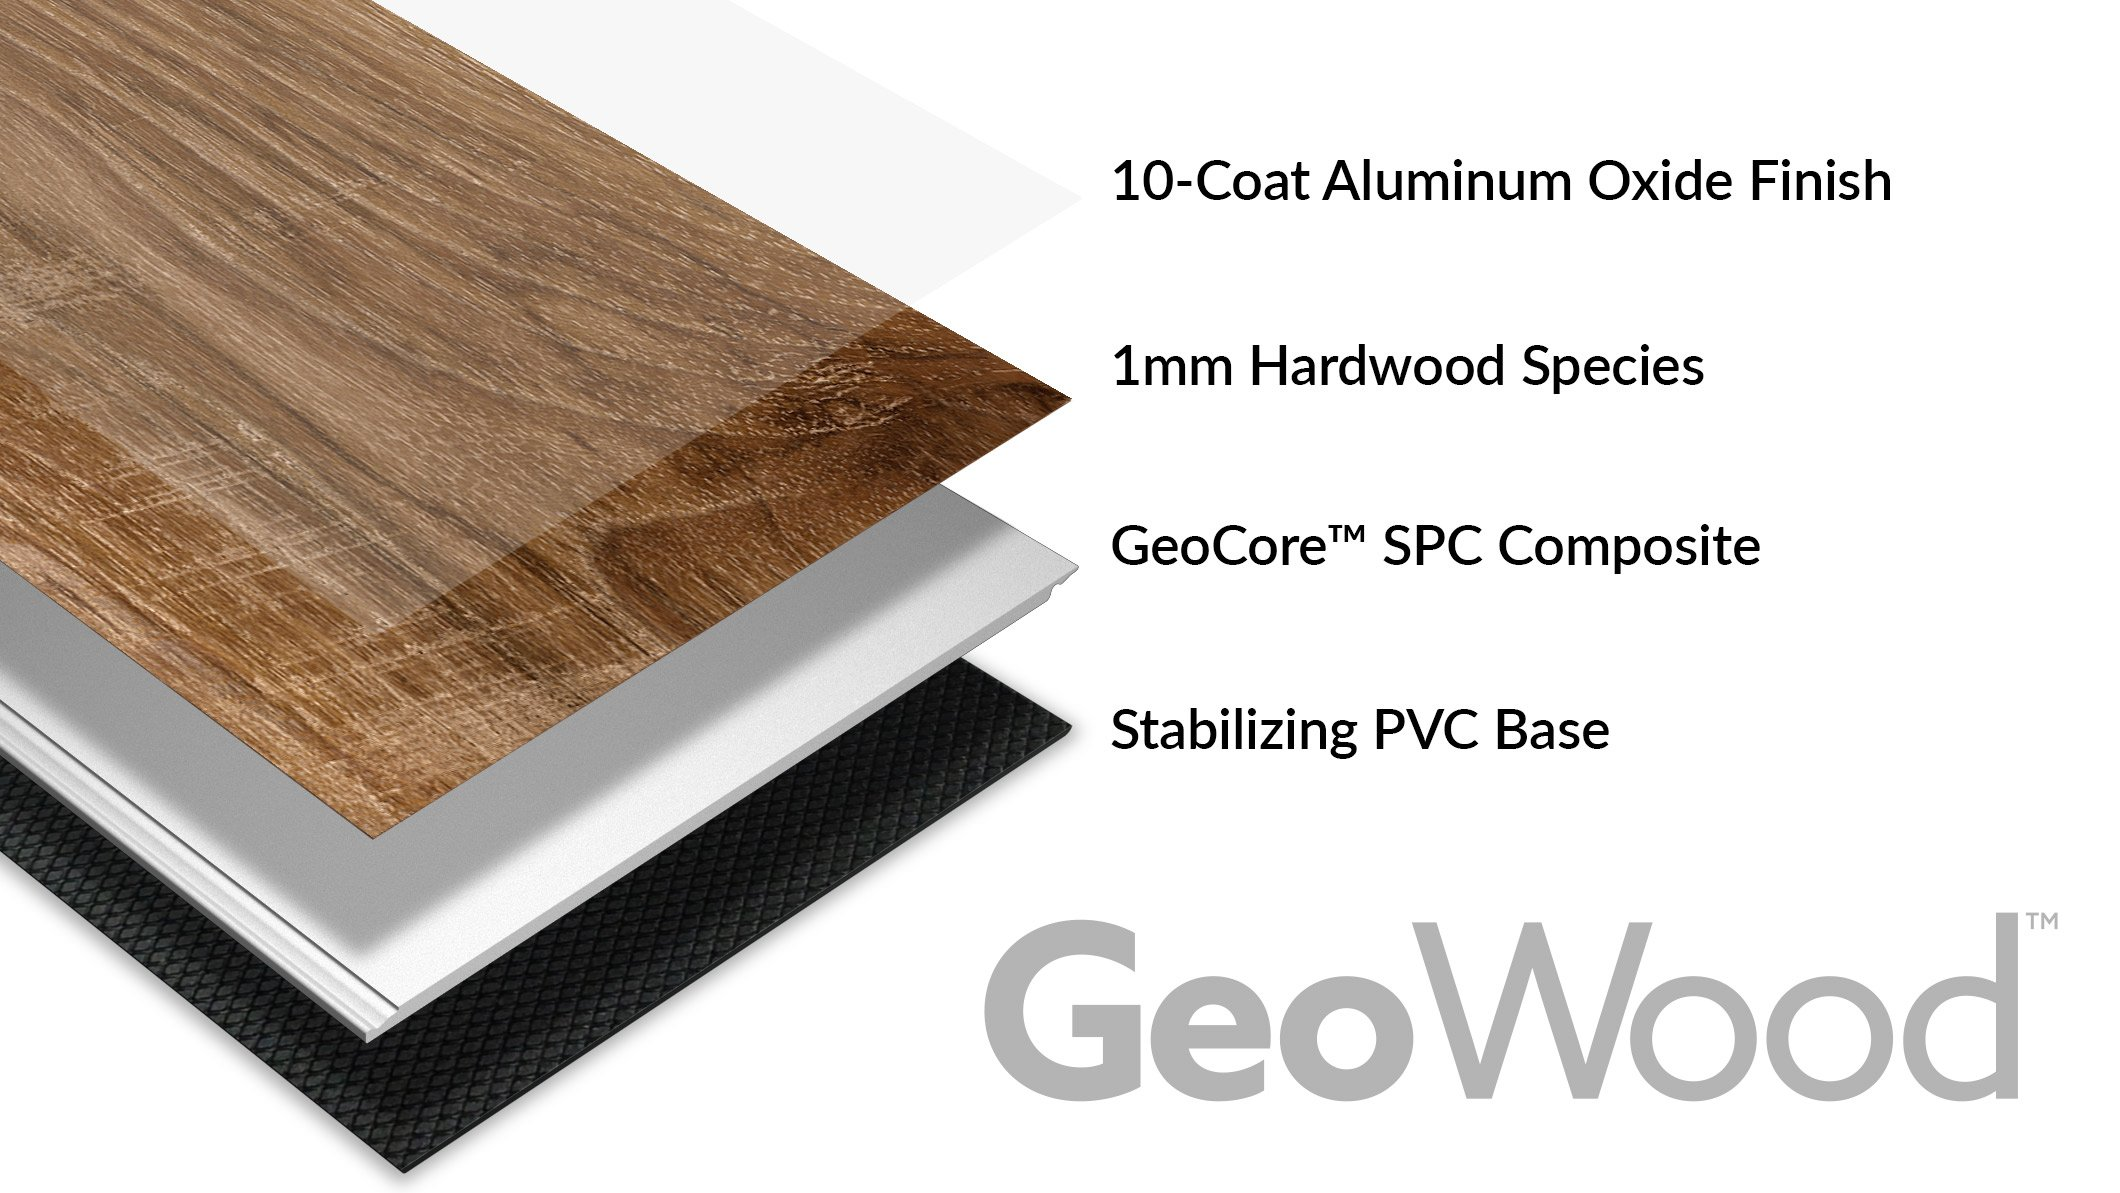 Introducing GeoWood the Rock Solid Wood Floor Cali Bamboo